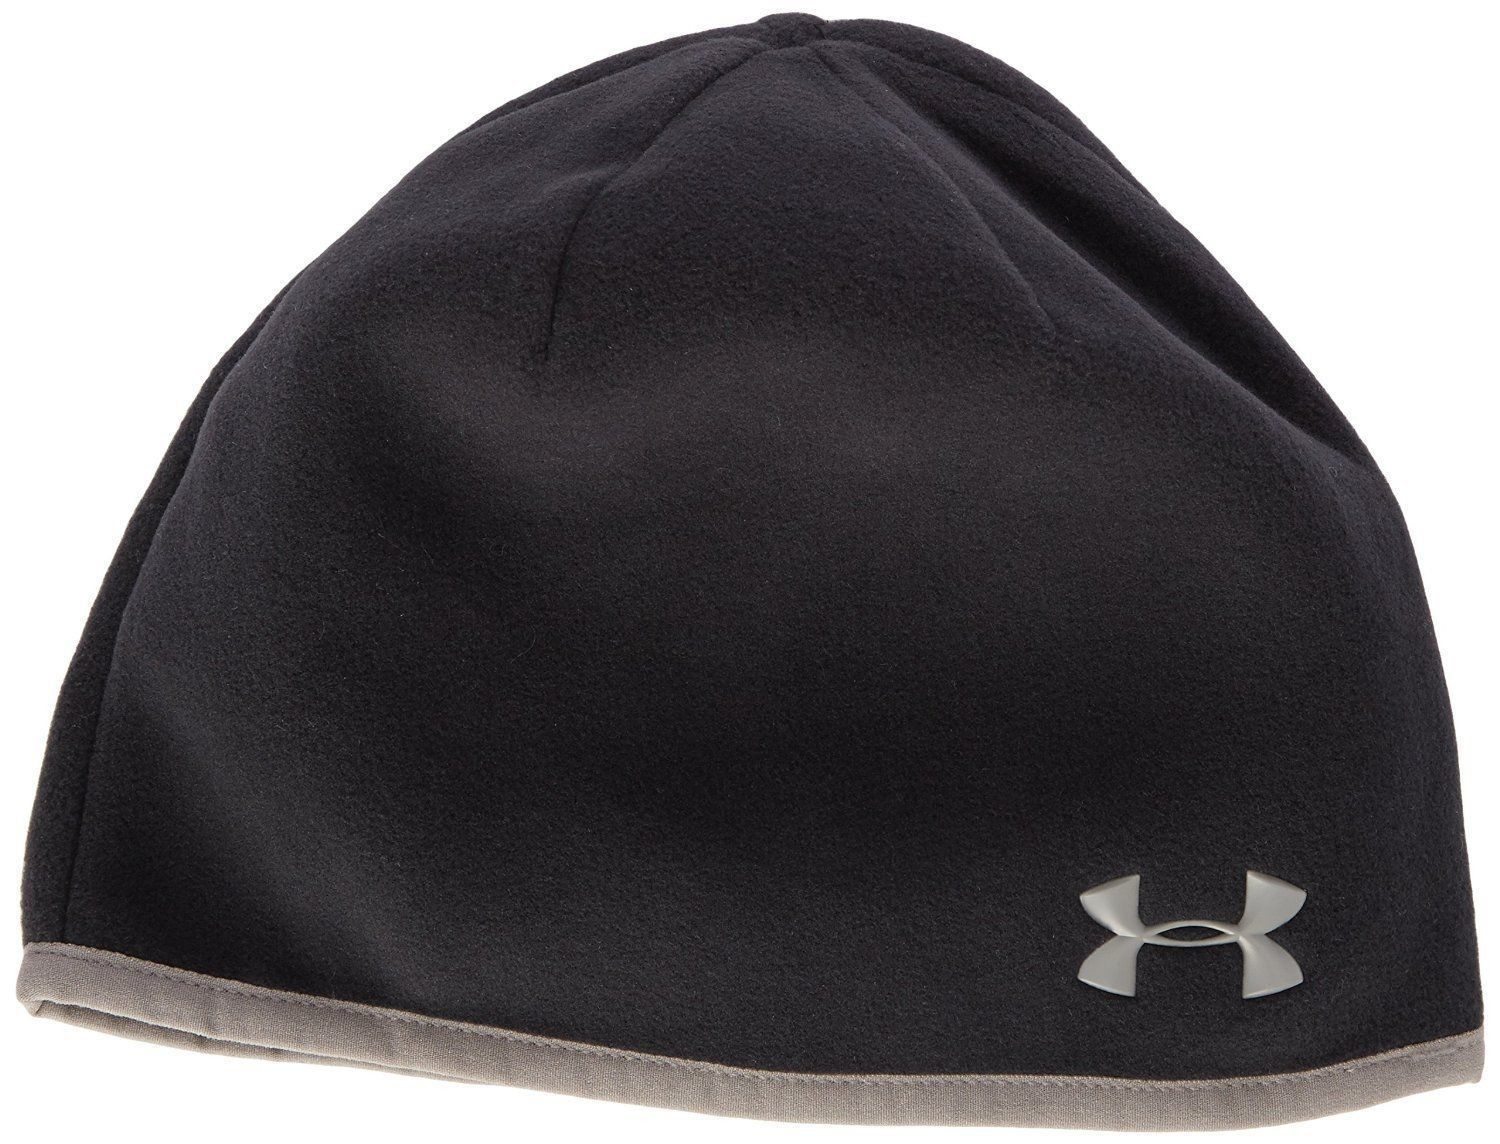 Under Armour STORM Infrared Women's Black/Steeple Gray UA Beanie Hat  (One Size)